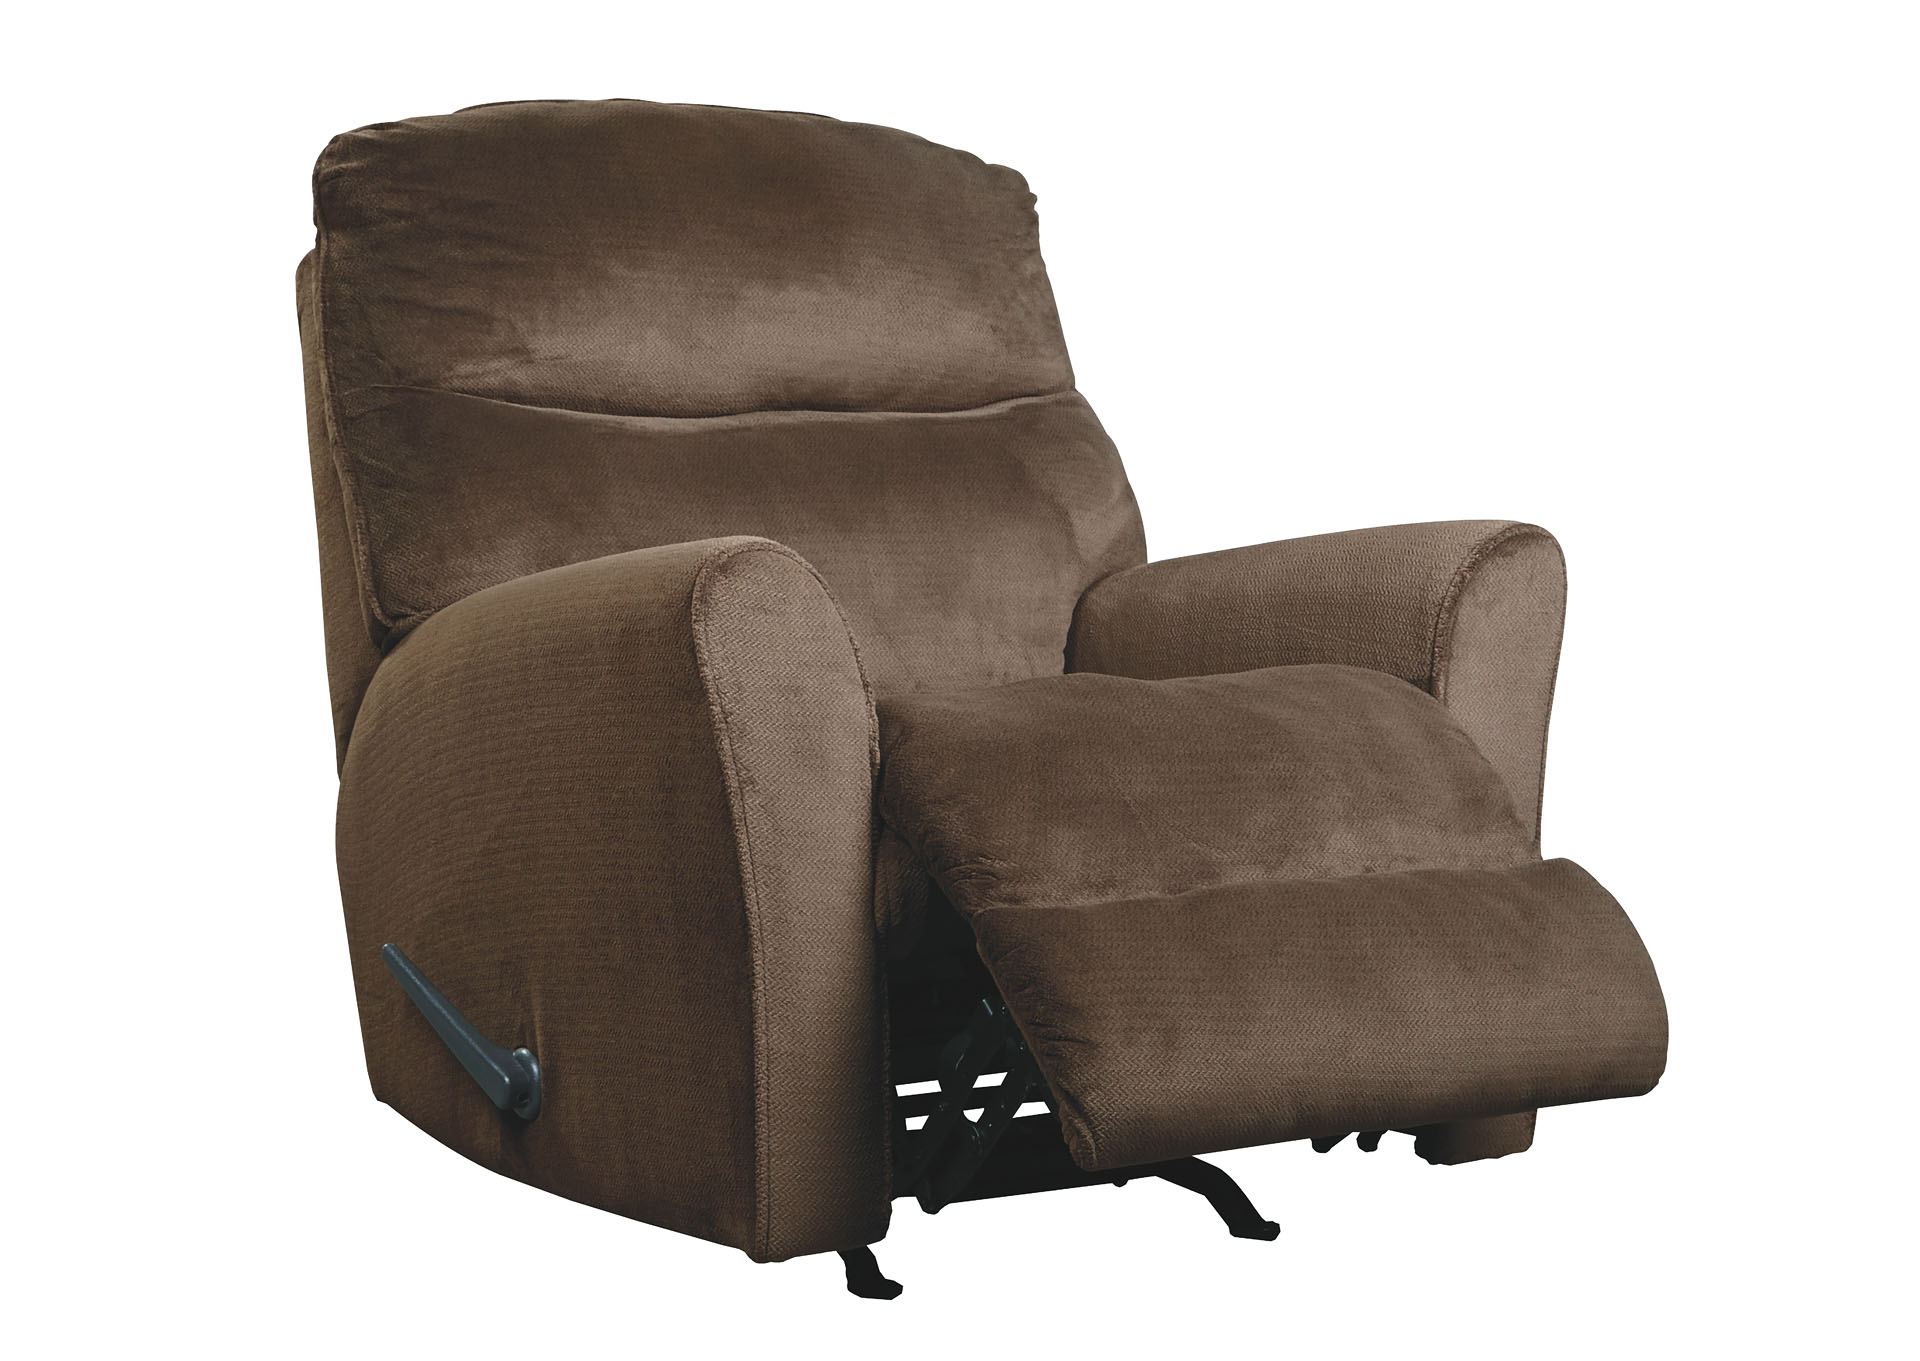 Cossette Chocolate Rocker Recliner,Signature Design by Ashley